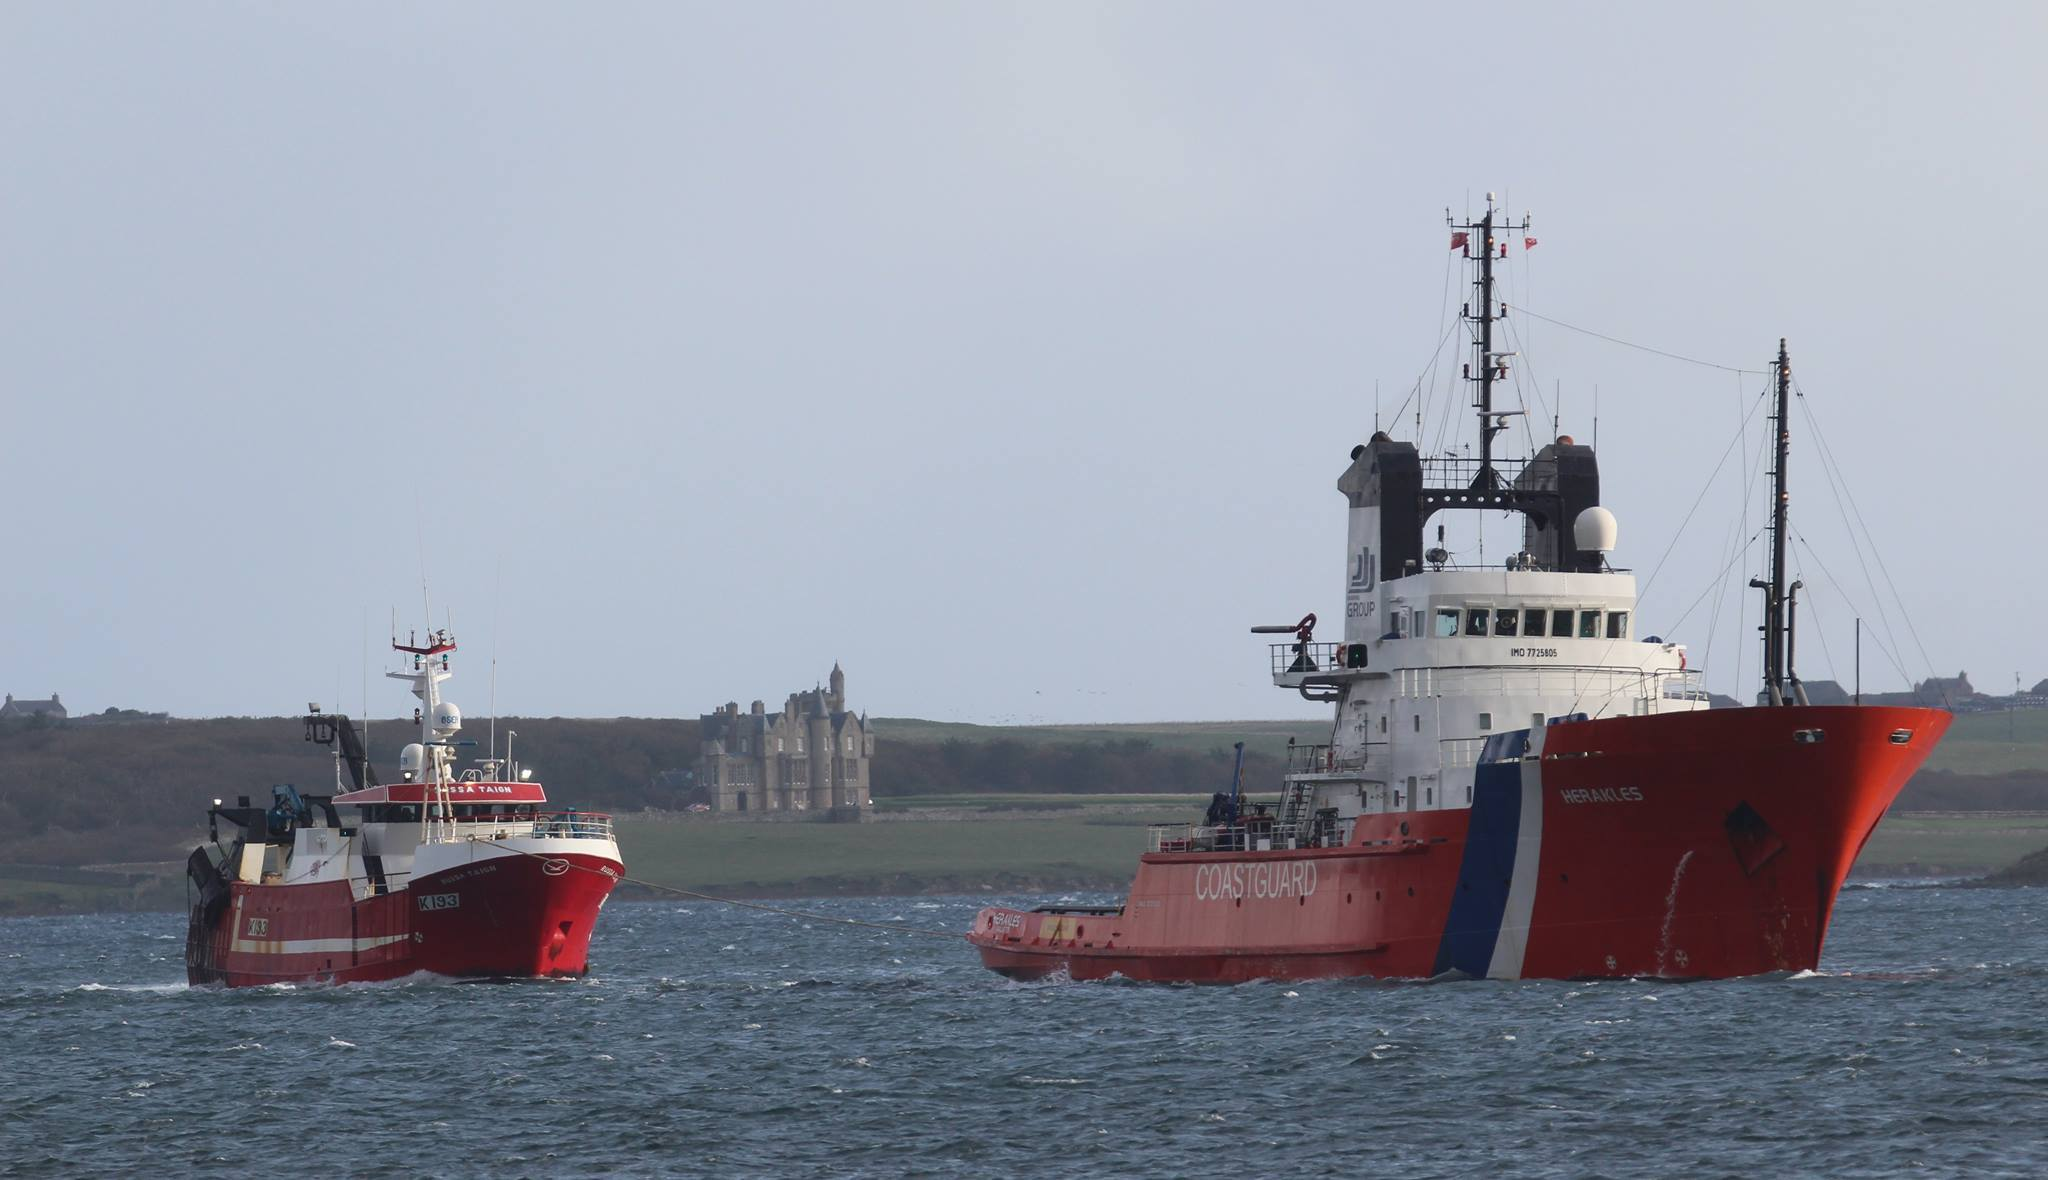 ETV Herakles towing the stricken vessel into Hatston